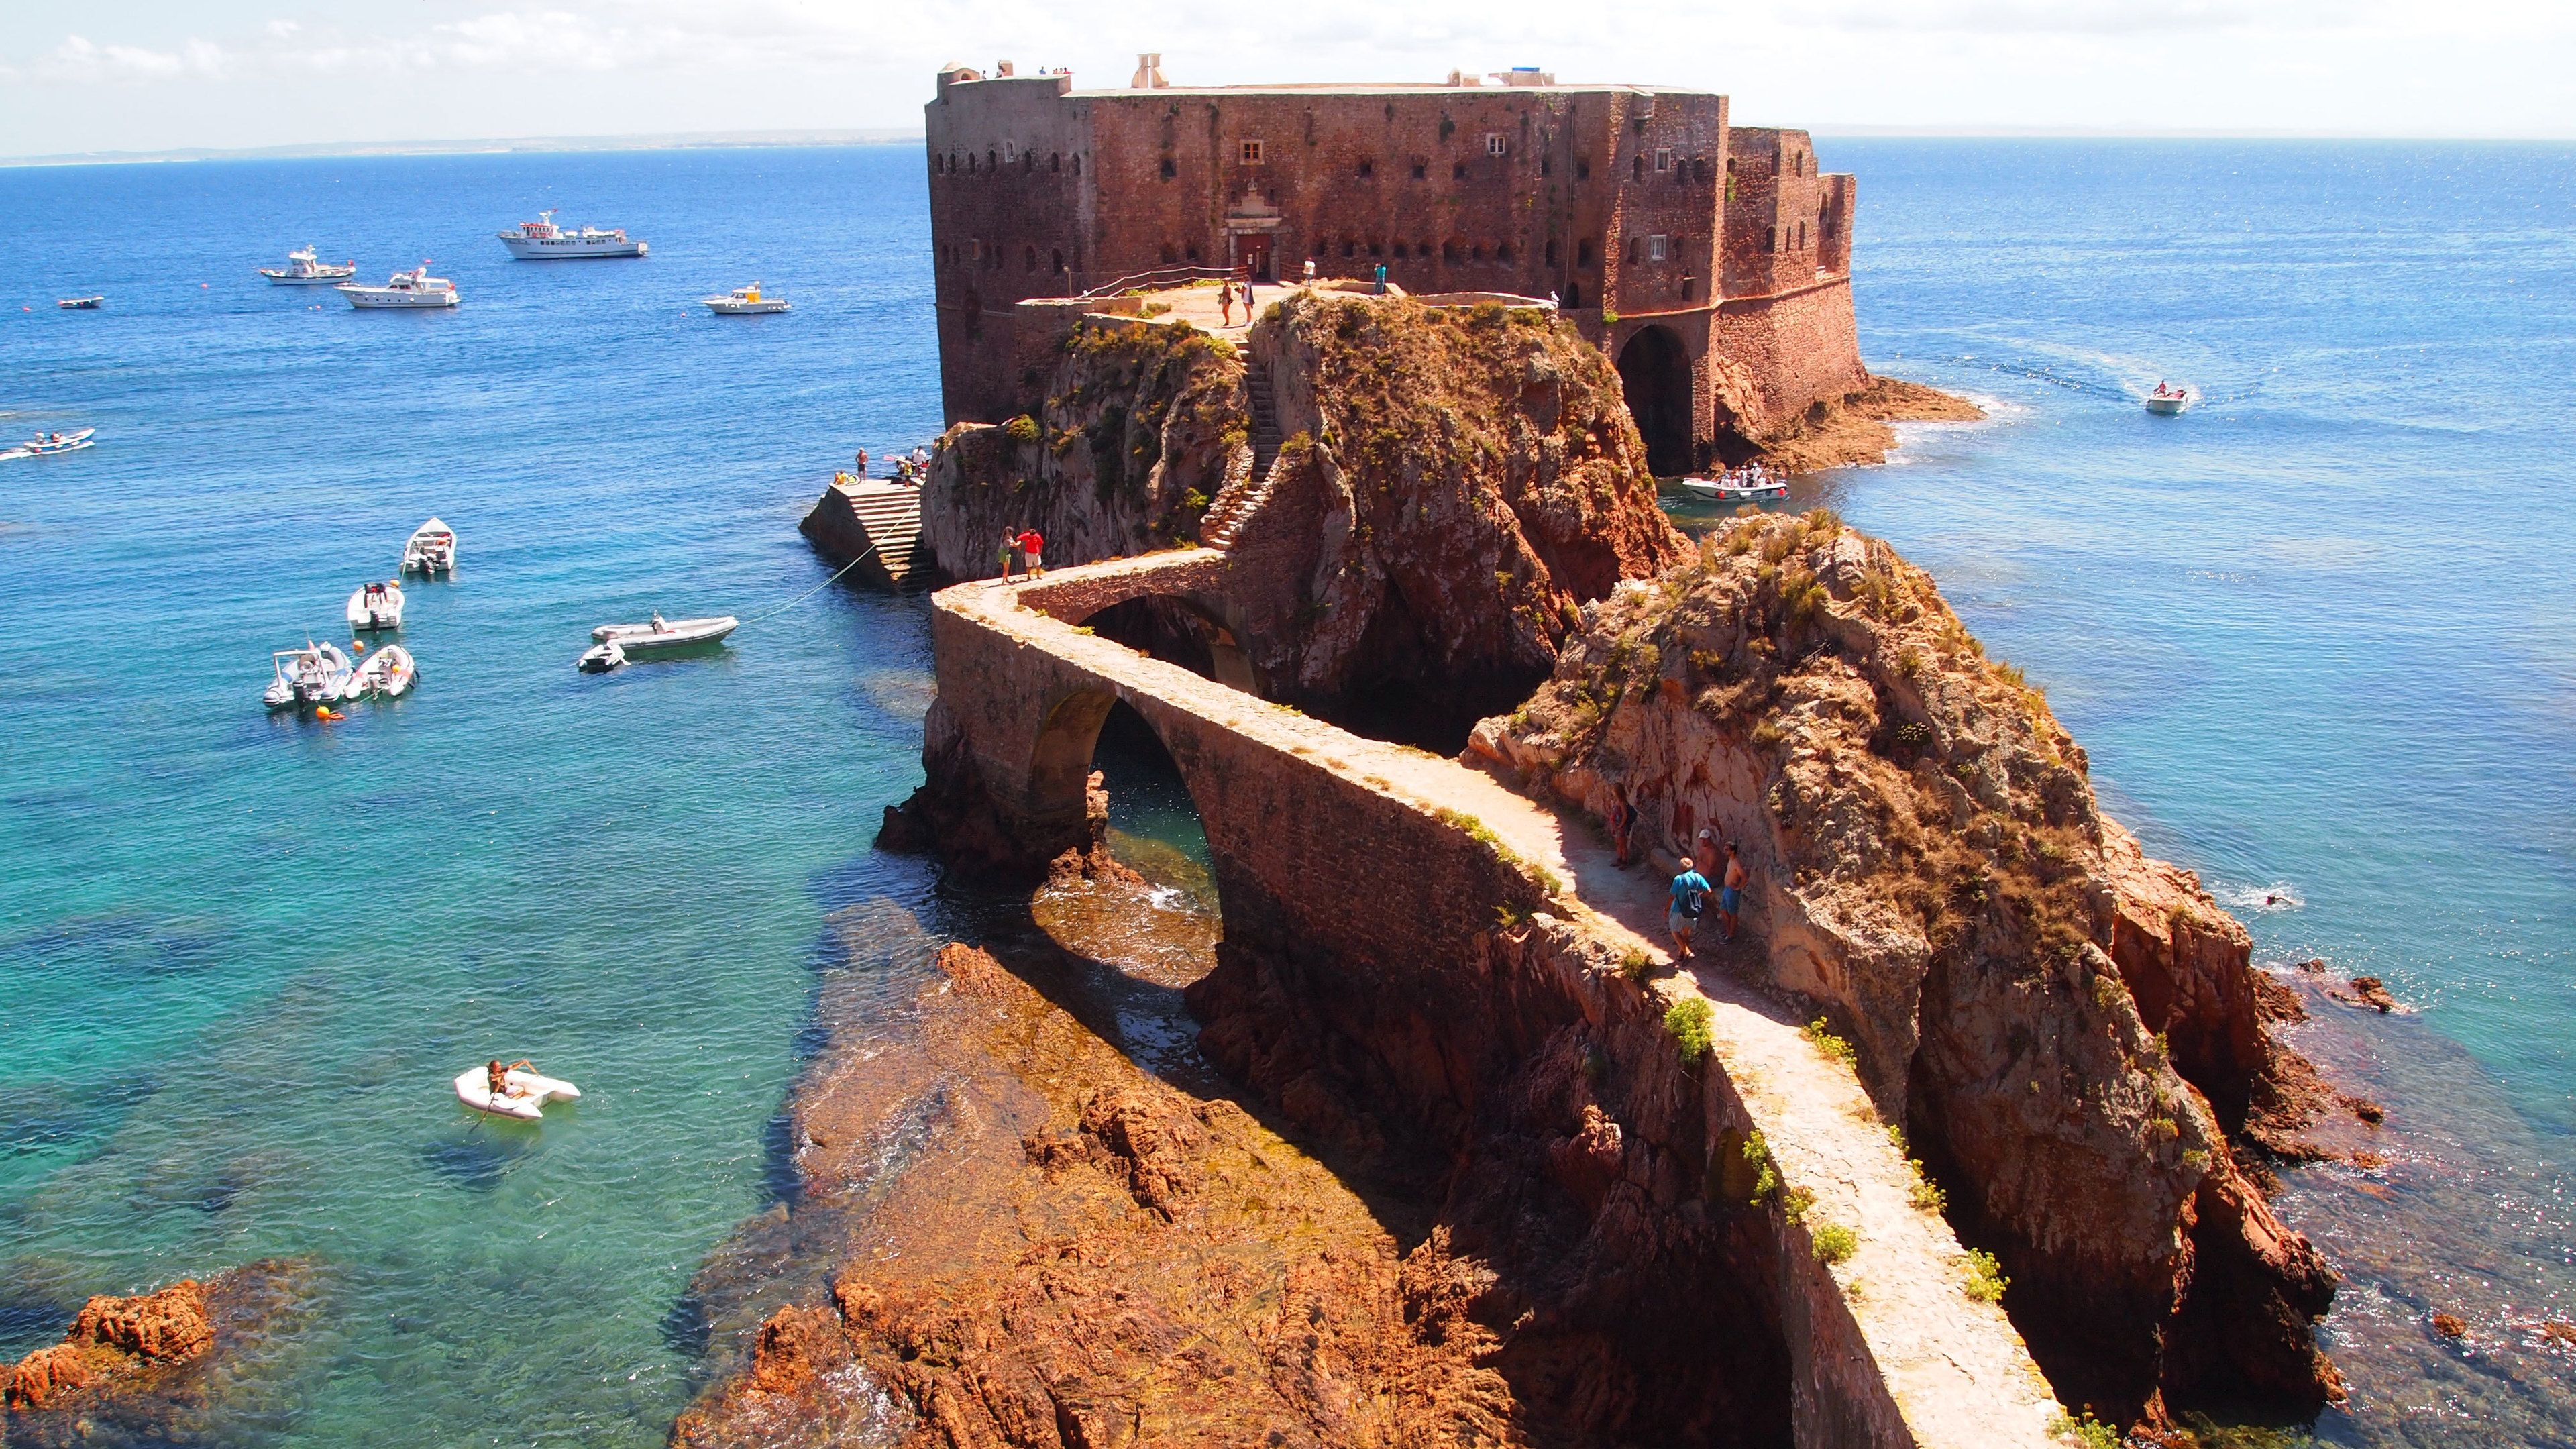 Island fortress in Berlengas Islands